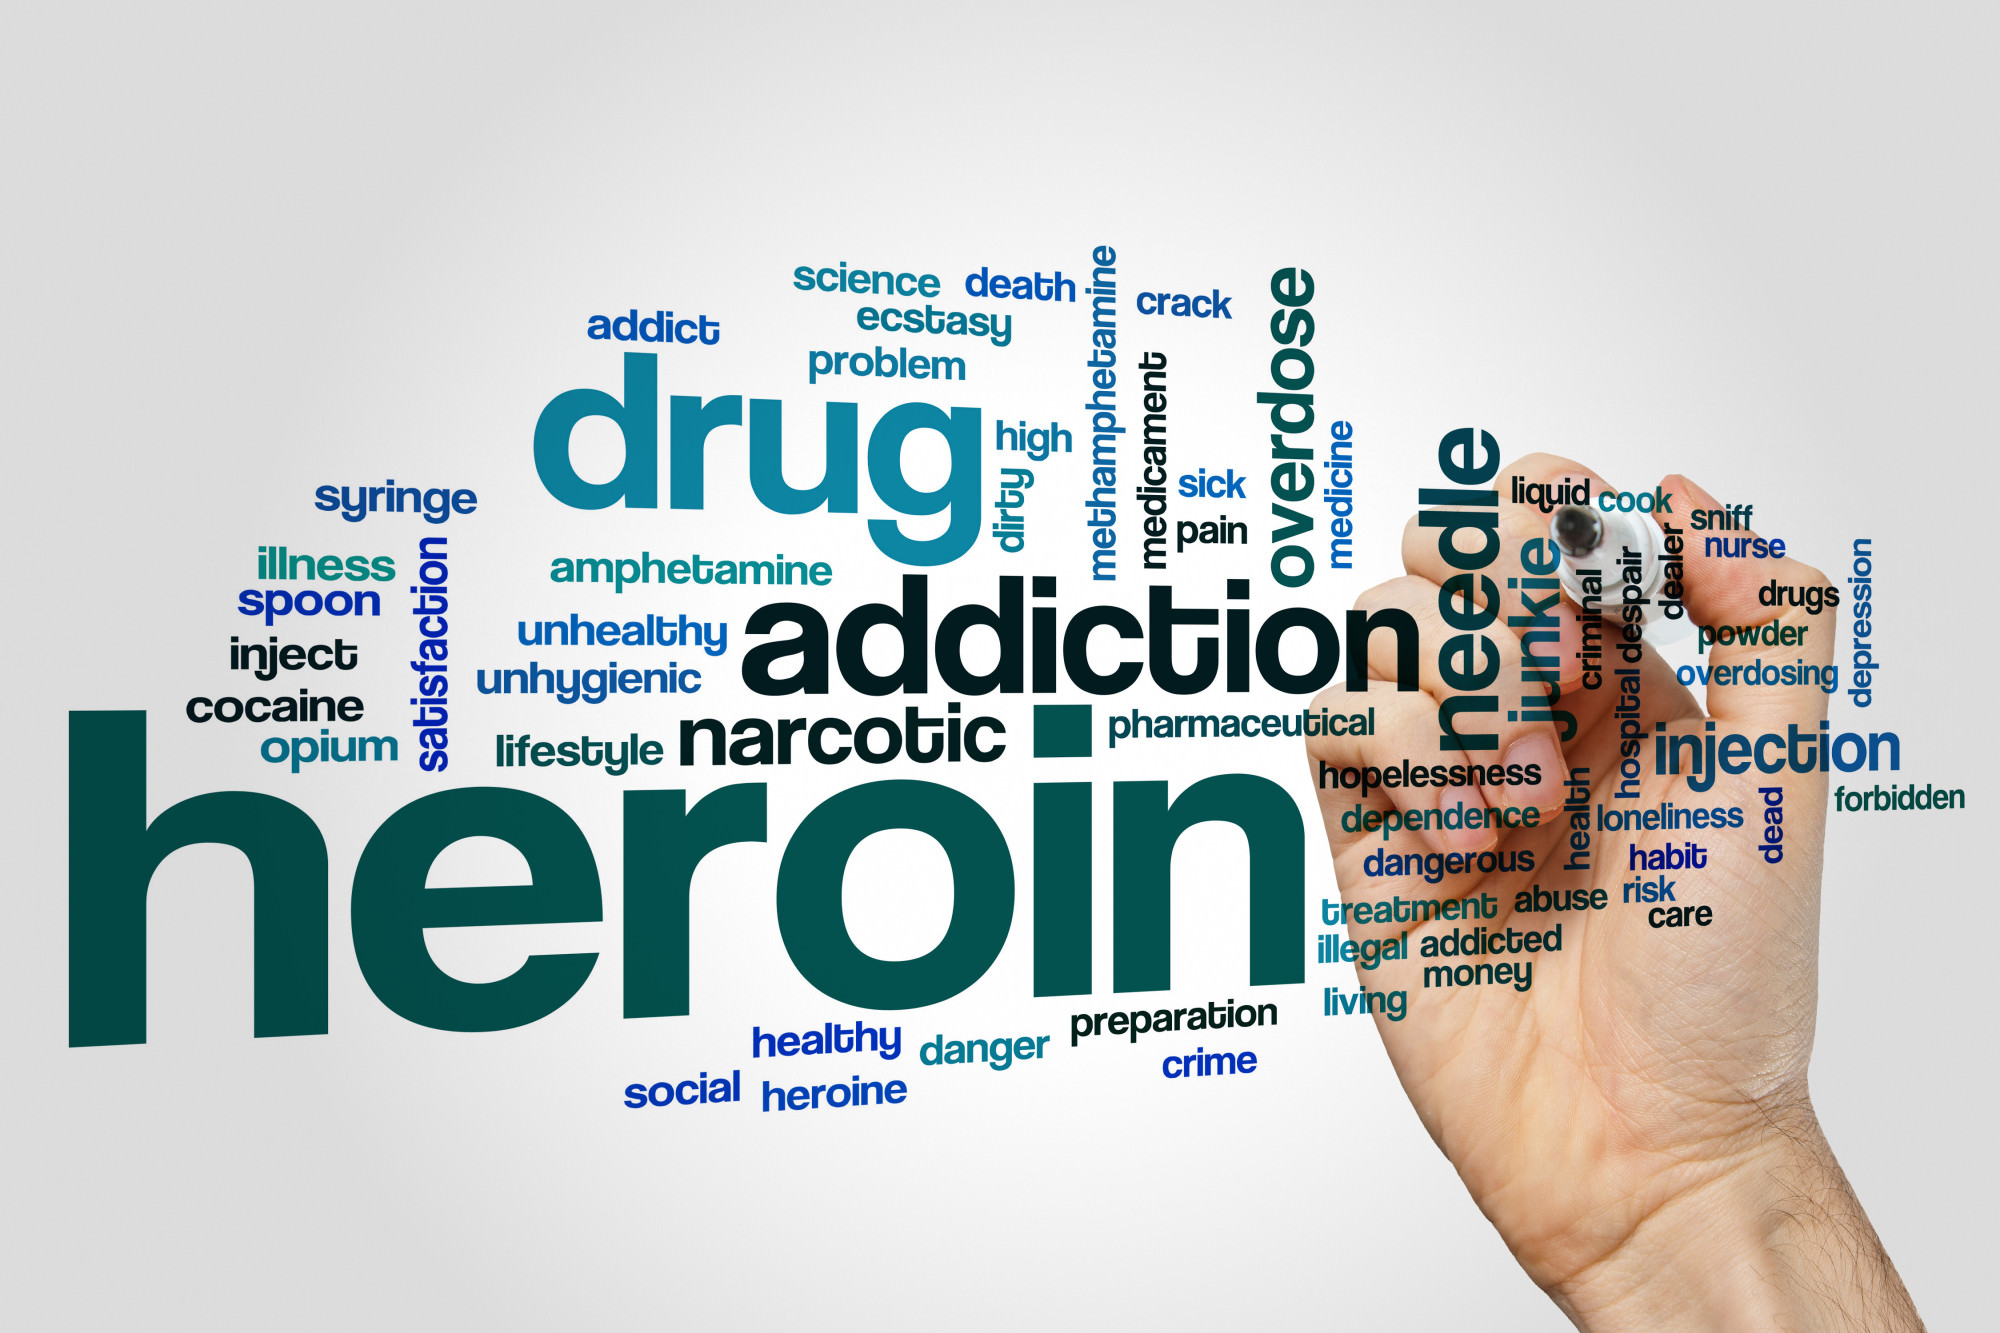 long-term effects of heroin use